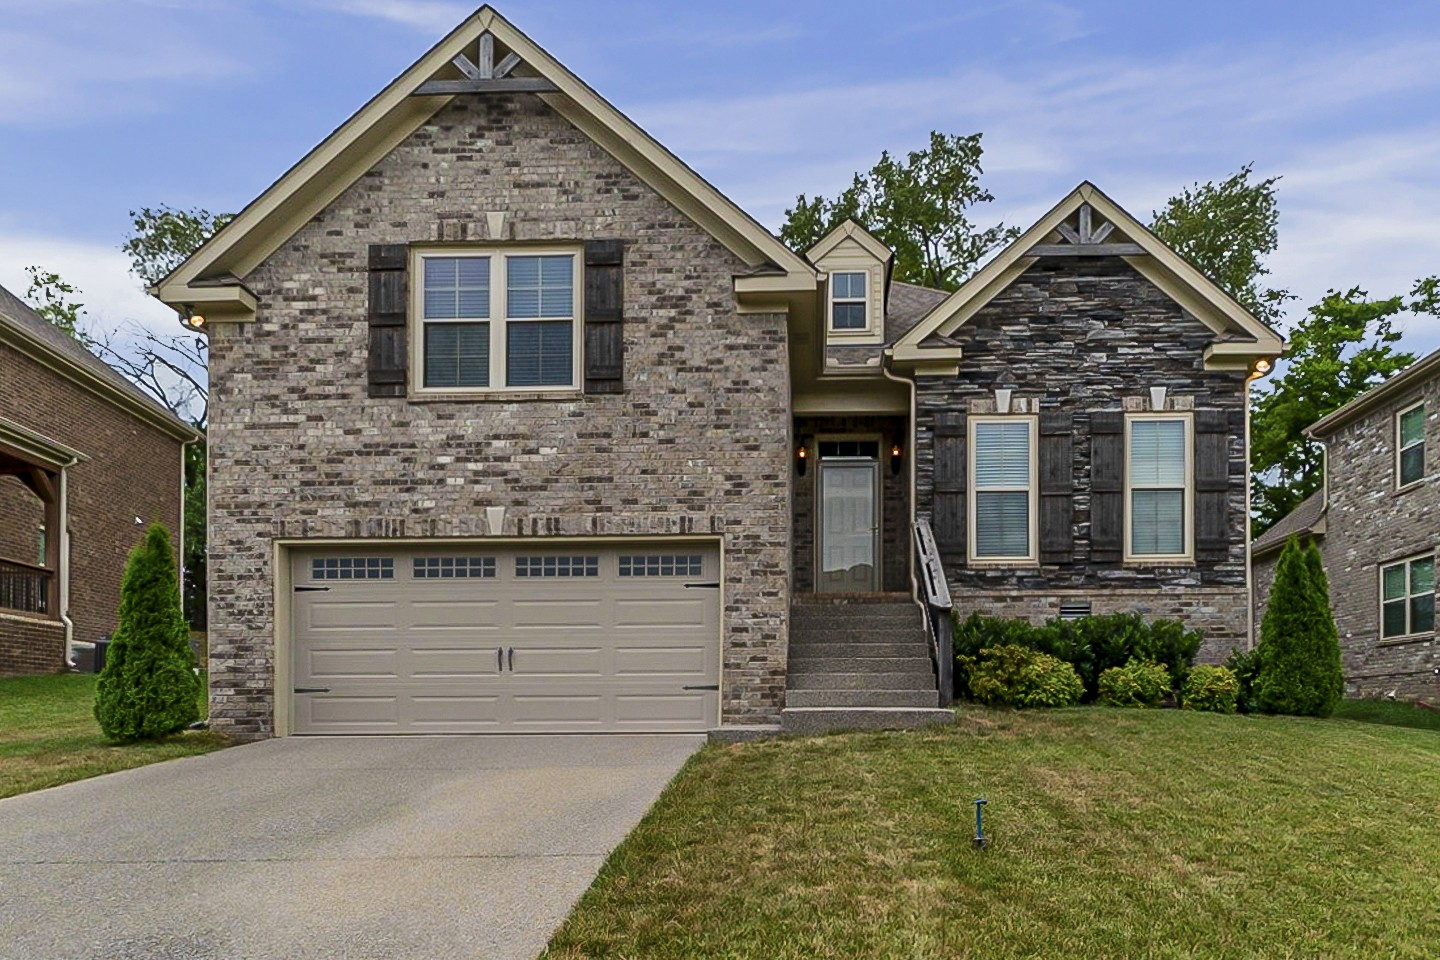 Built in 2017, this Spring Hill one-story home offers granite countertops, and a two-car garage.